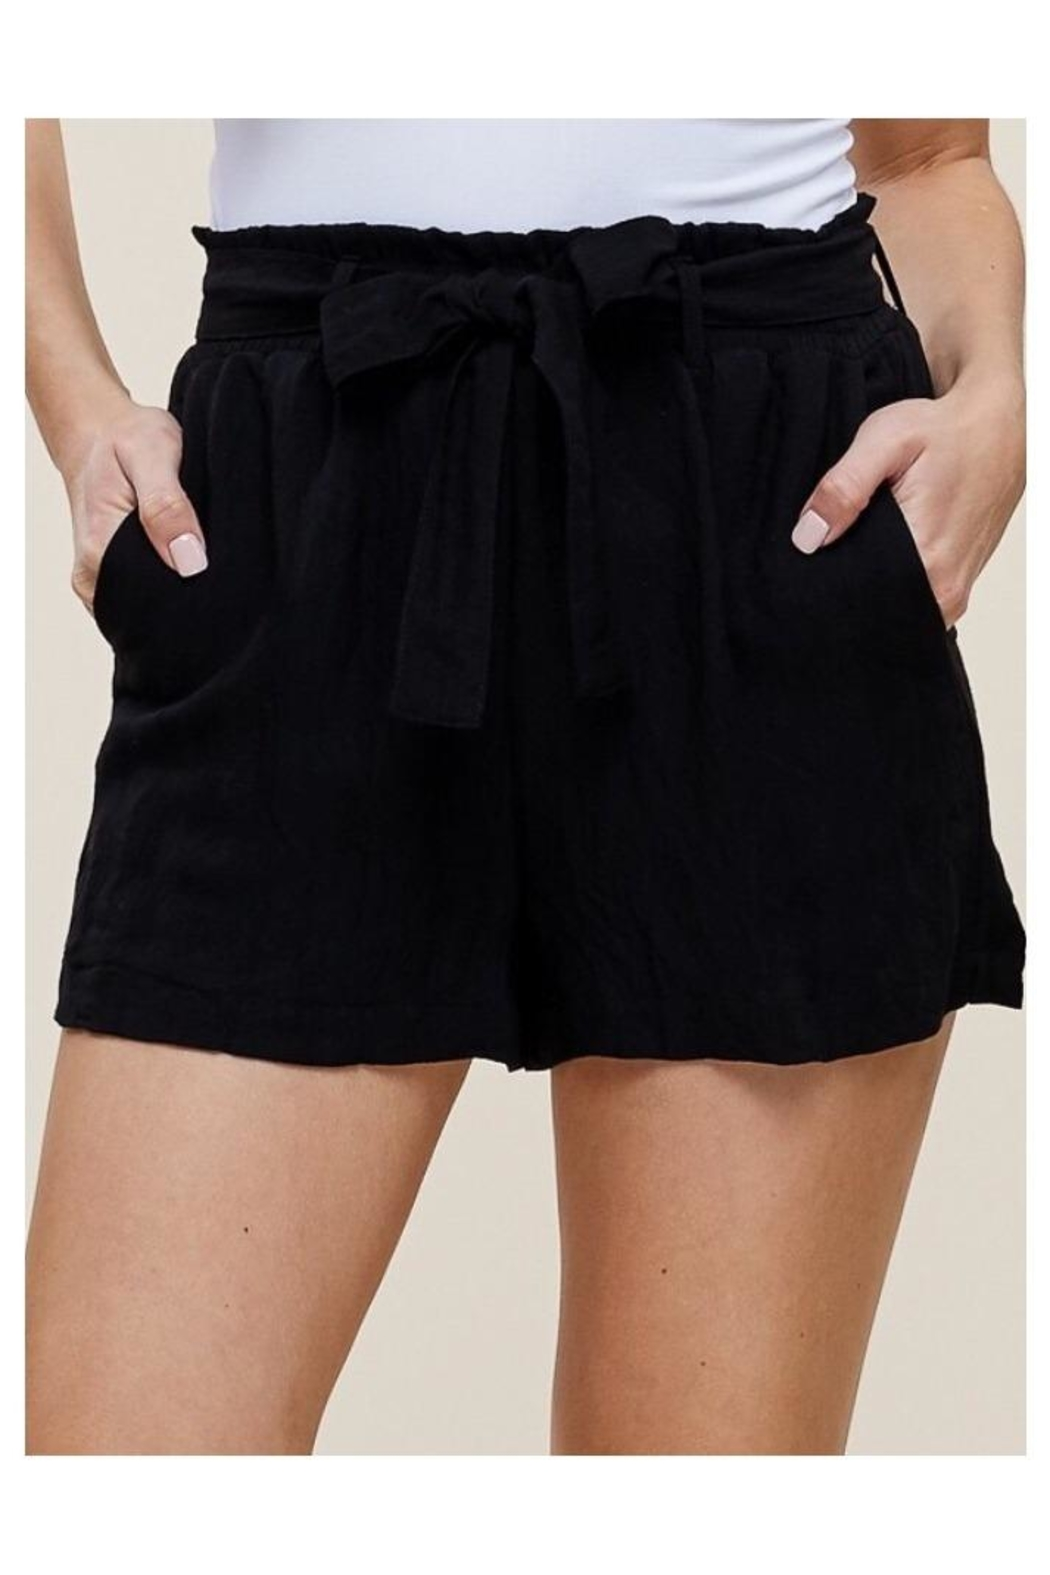 Polly & Esther Linen Tie-Front Shorts - Main Image